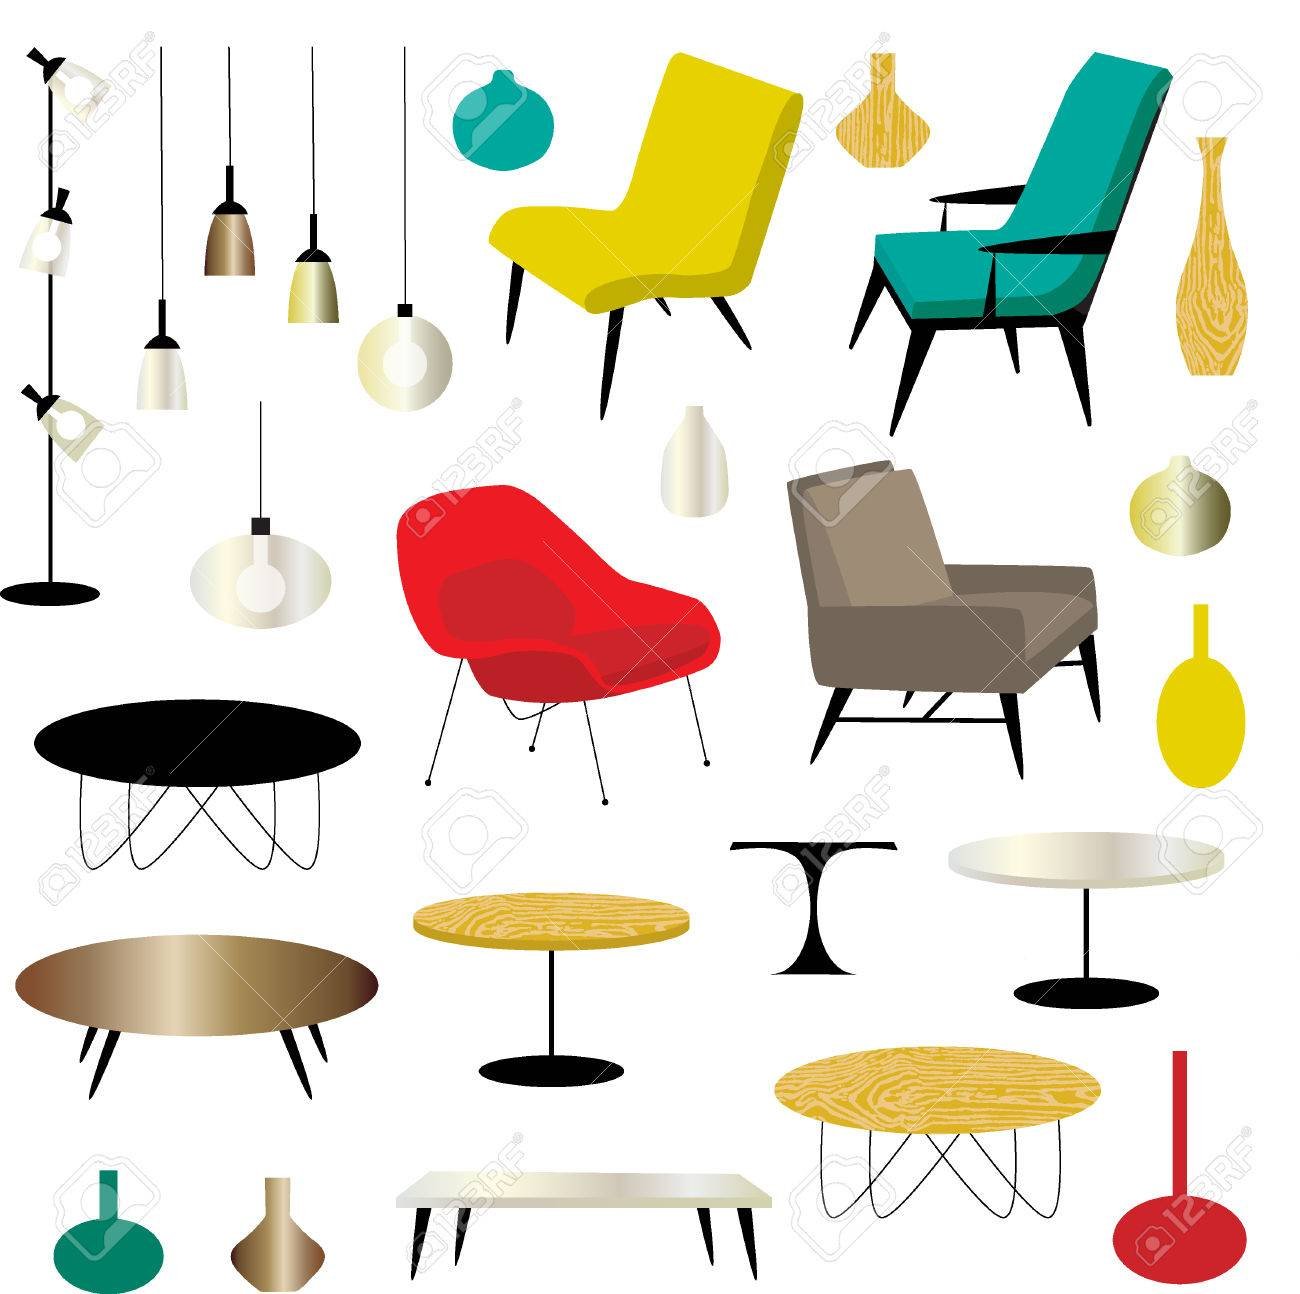 furniture clipart royalty free cliparts vectors and stock rh 123rf com